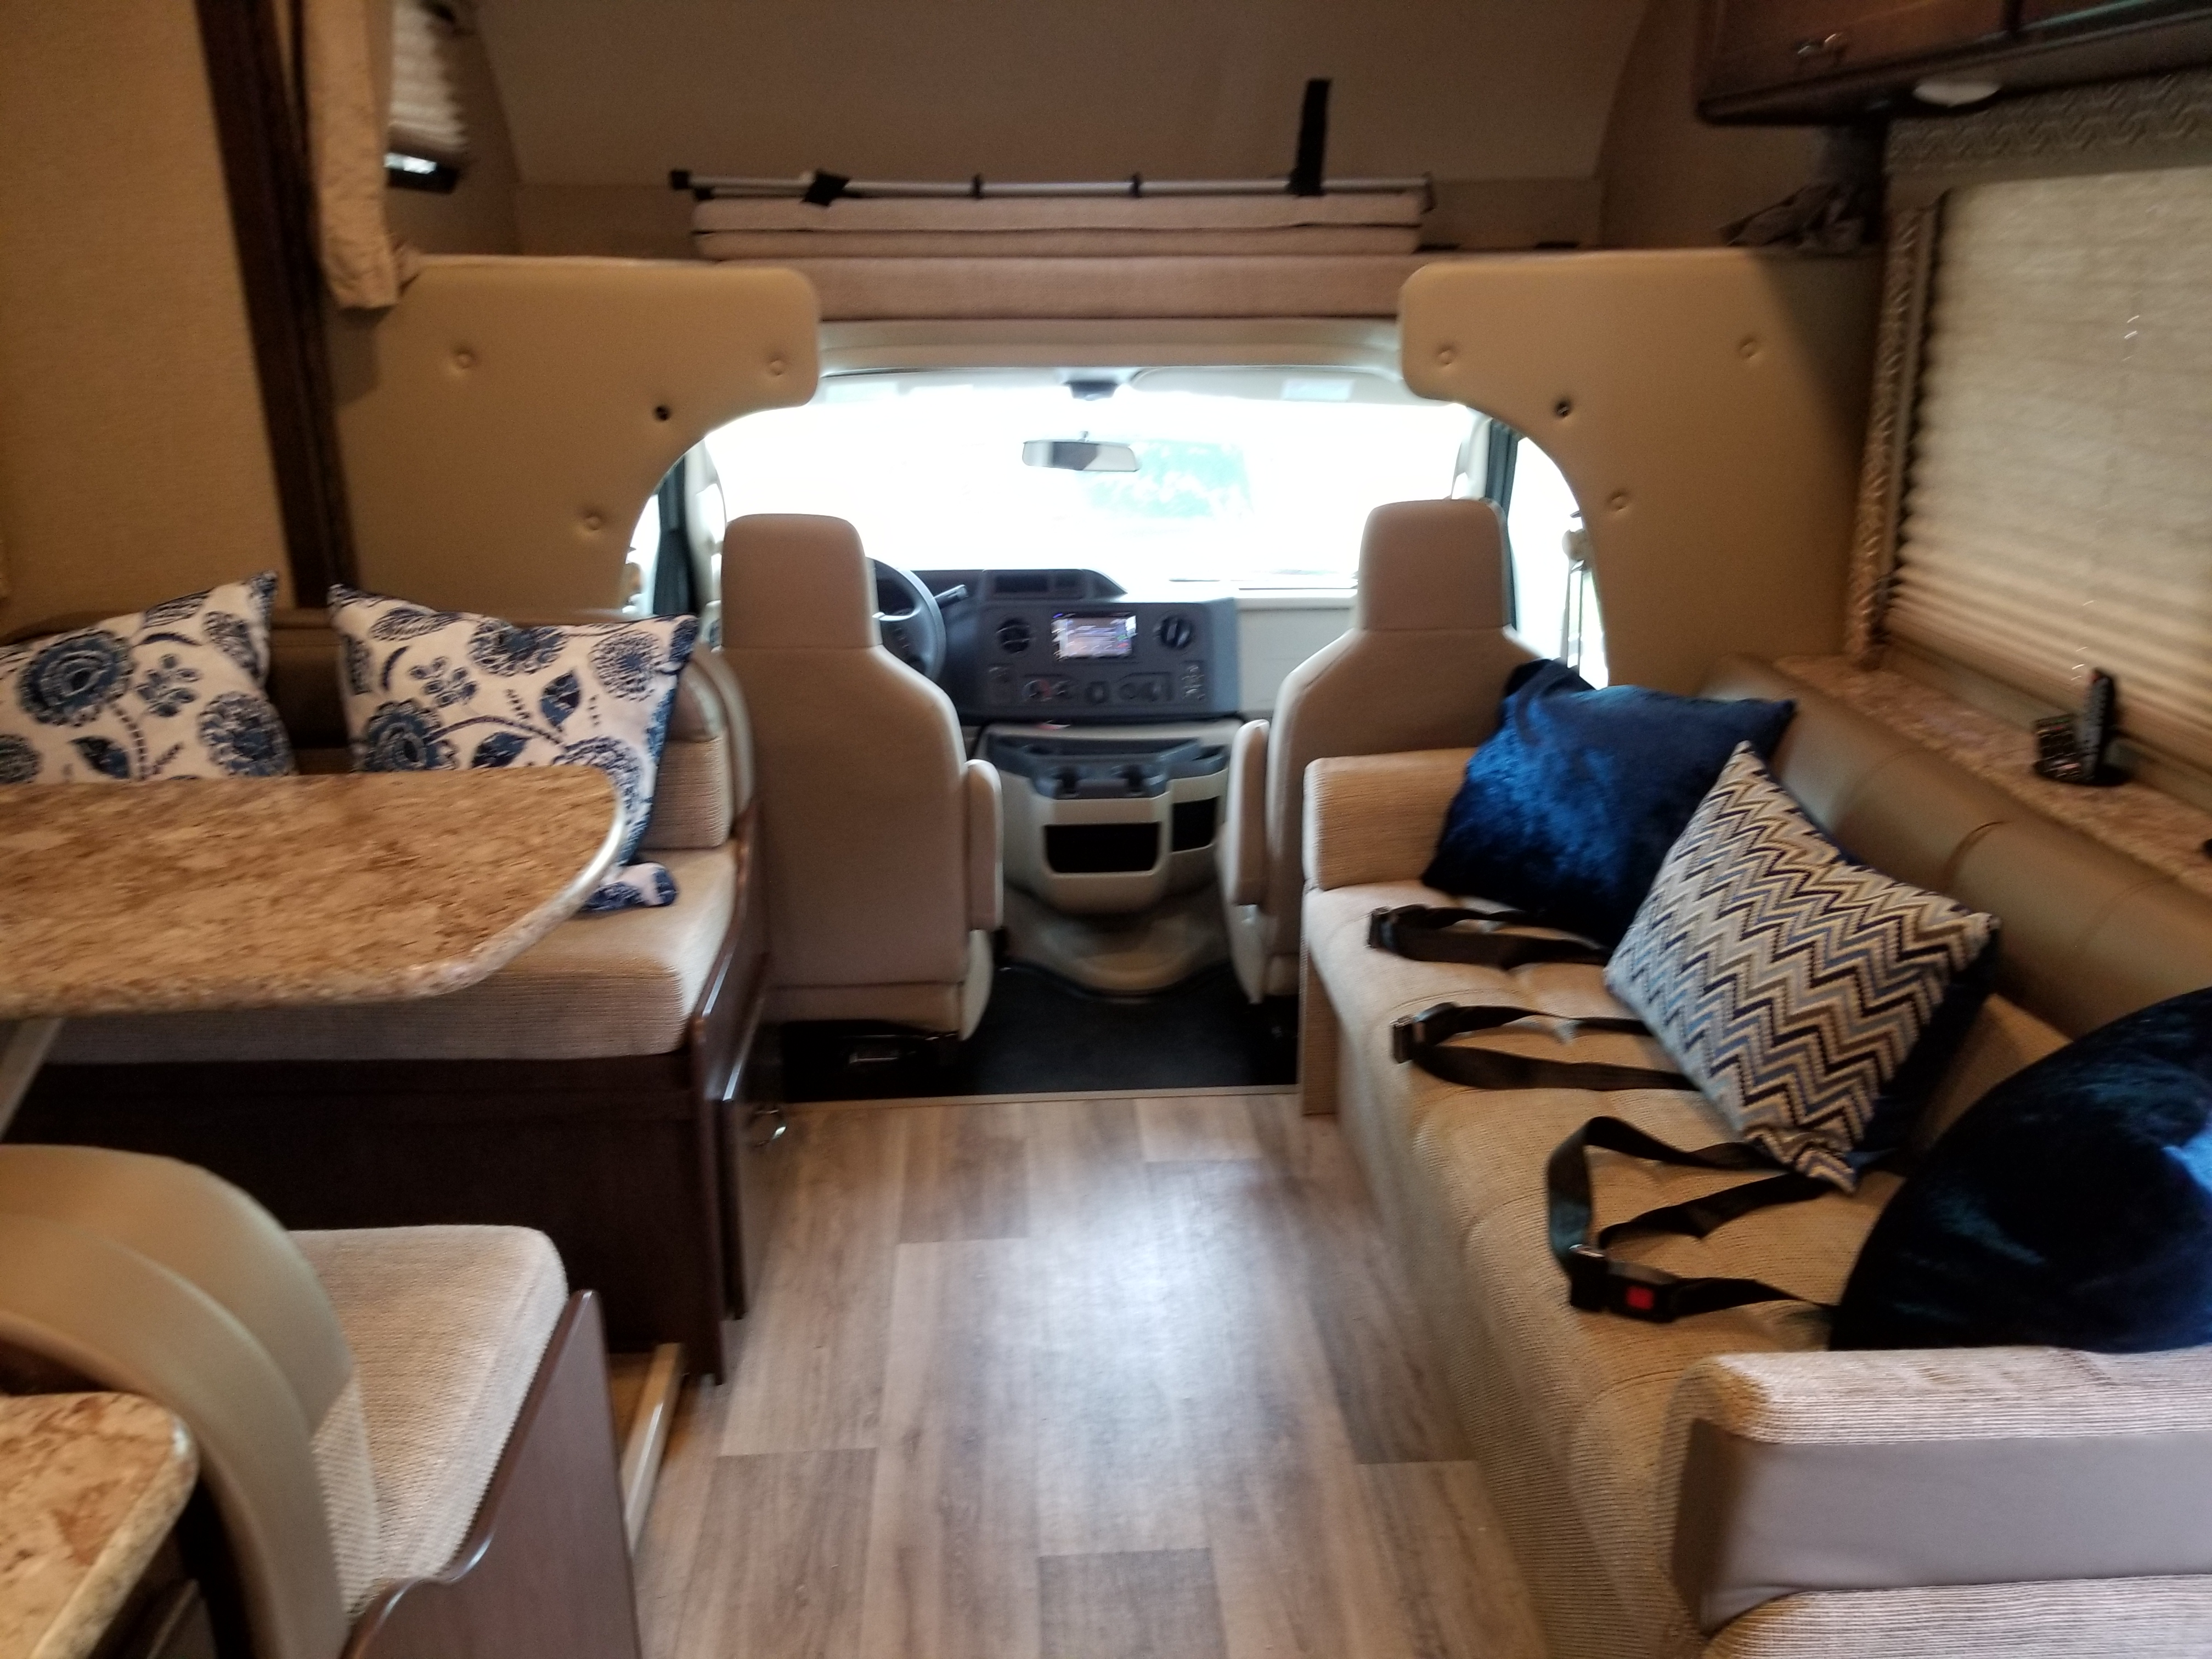 The Anywheremobile has a spacious interior.   Featured is the dinette that can seat 4 comfortably, a 3 seater couch, and a 500 lbs capacity overcab.  The dinette and couch convert into sleeping  areas and the over cab can be used as a sleeping area or for storage. . Thor Motor Coach Freedom Elite 29FE 2018